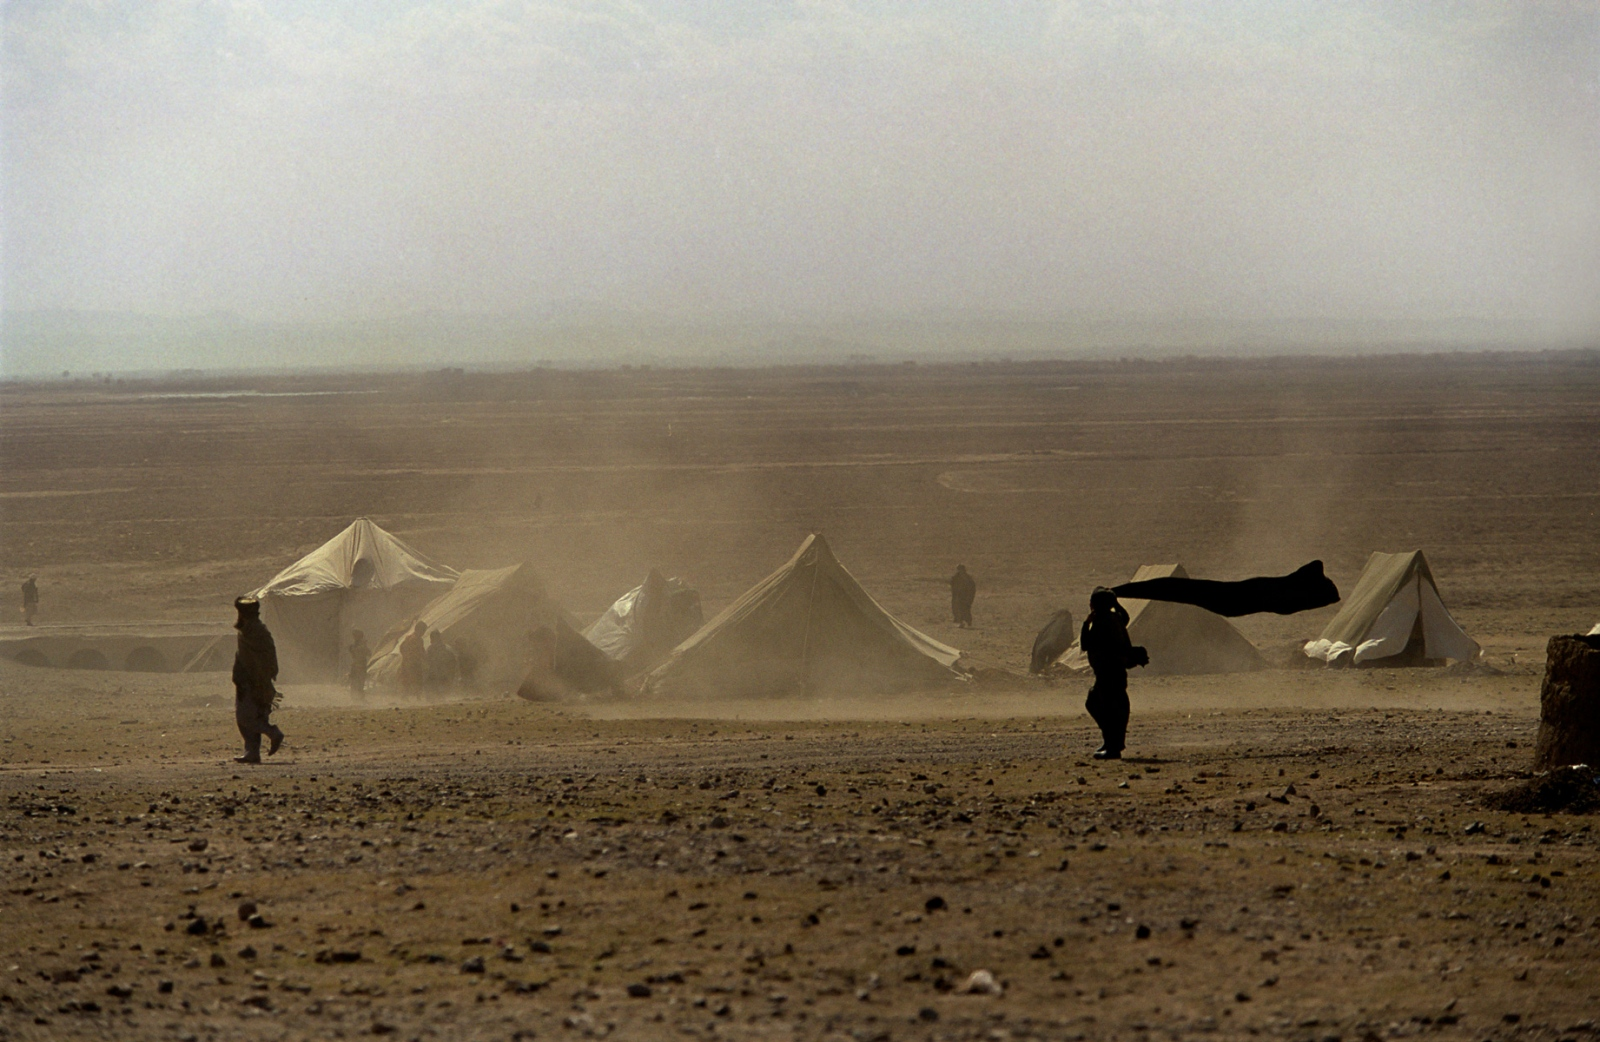 The refugees look in every direction and see nothing but wind, sand and mountains in the distance.